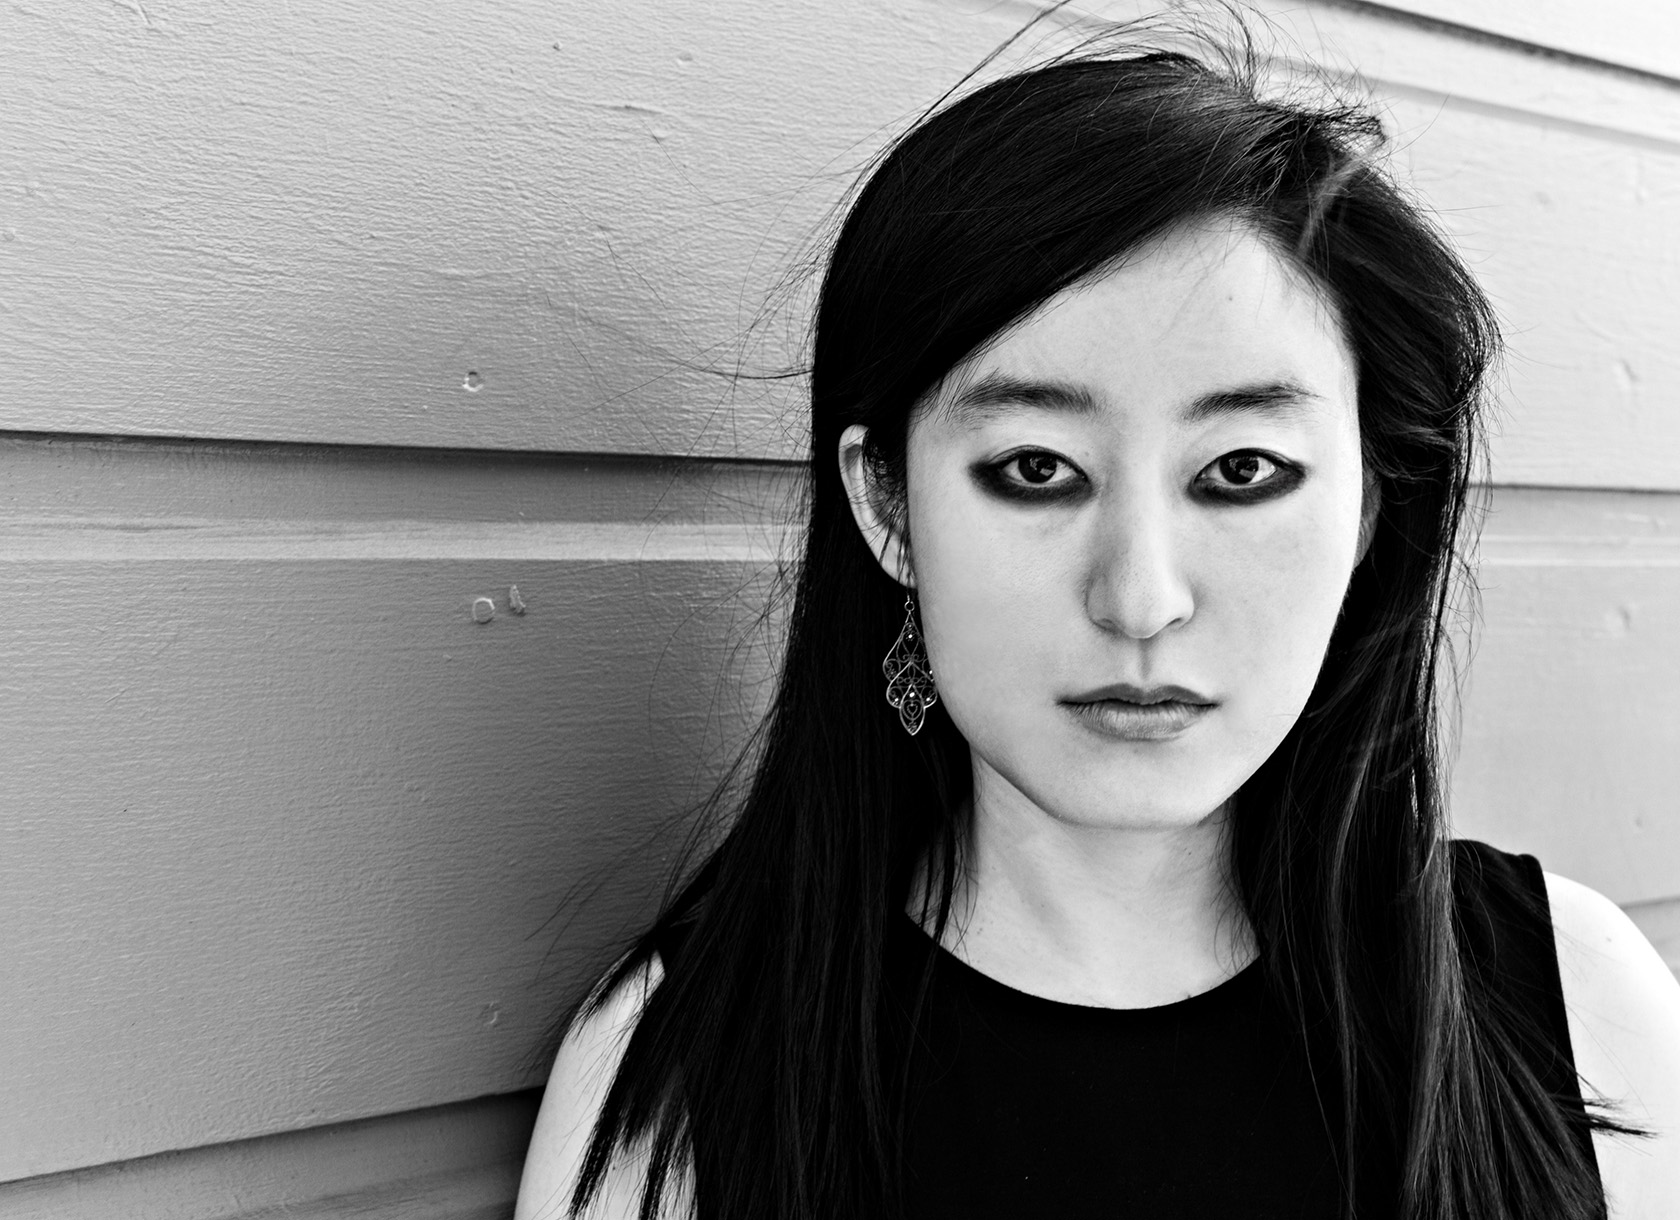 A black and white headshot of a young Asian woman with long black hair and black eyeliner.